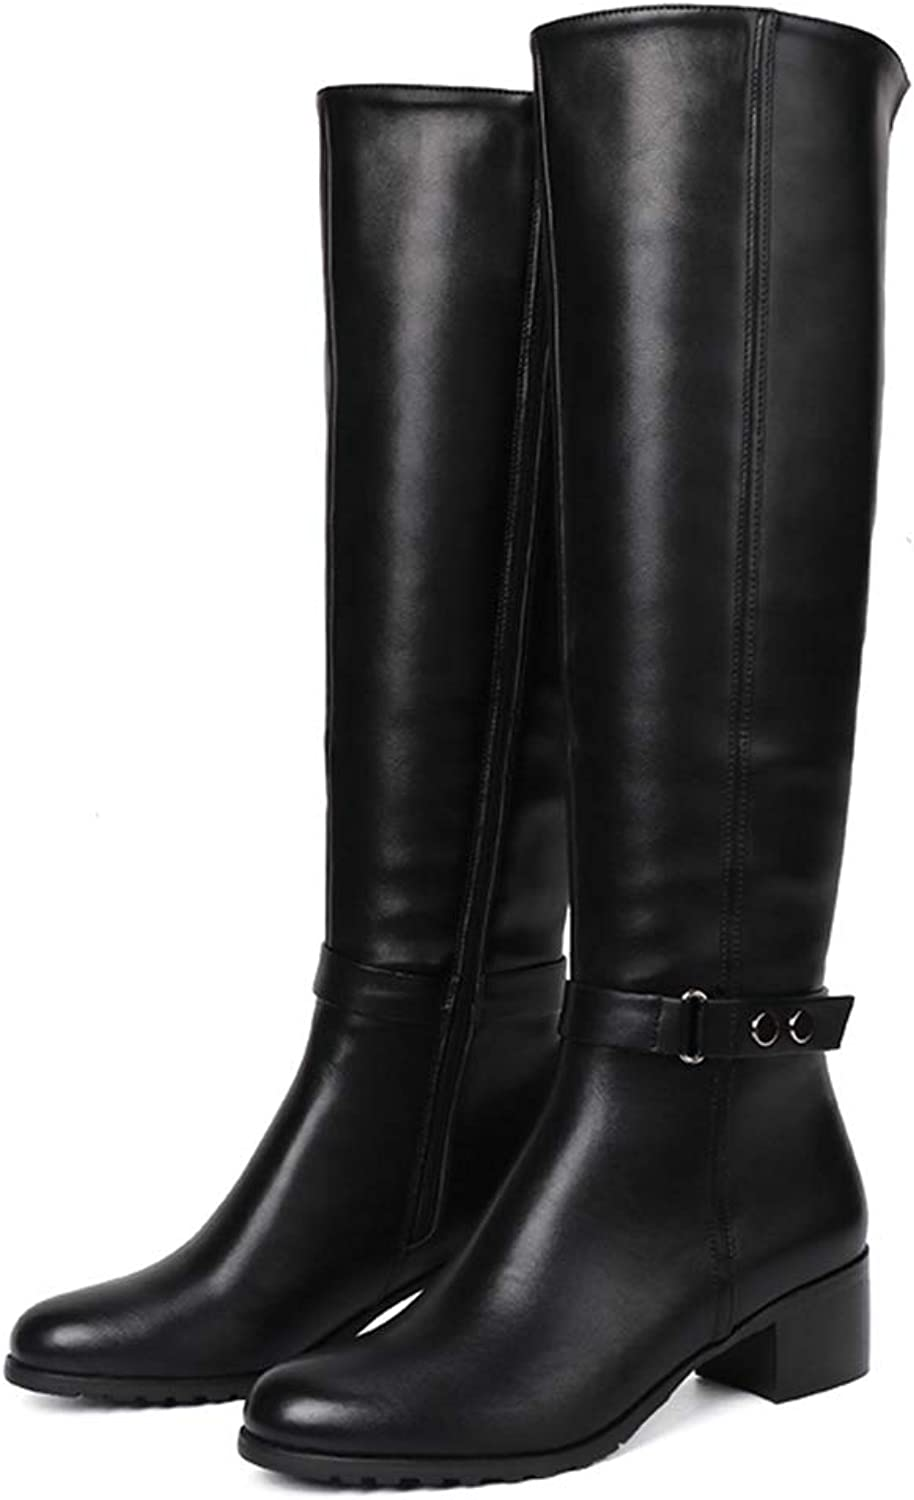 Knee High Winter Fur Boots Over The Knee Women Boot Soft Leather Zipper Ladies Thigh High Spring Warm shoes